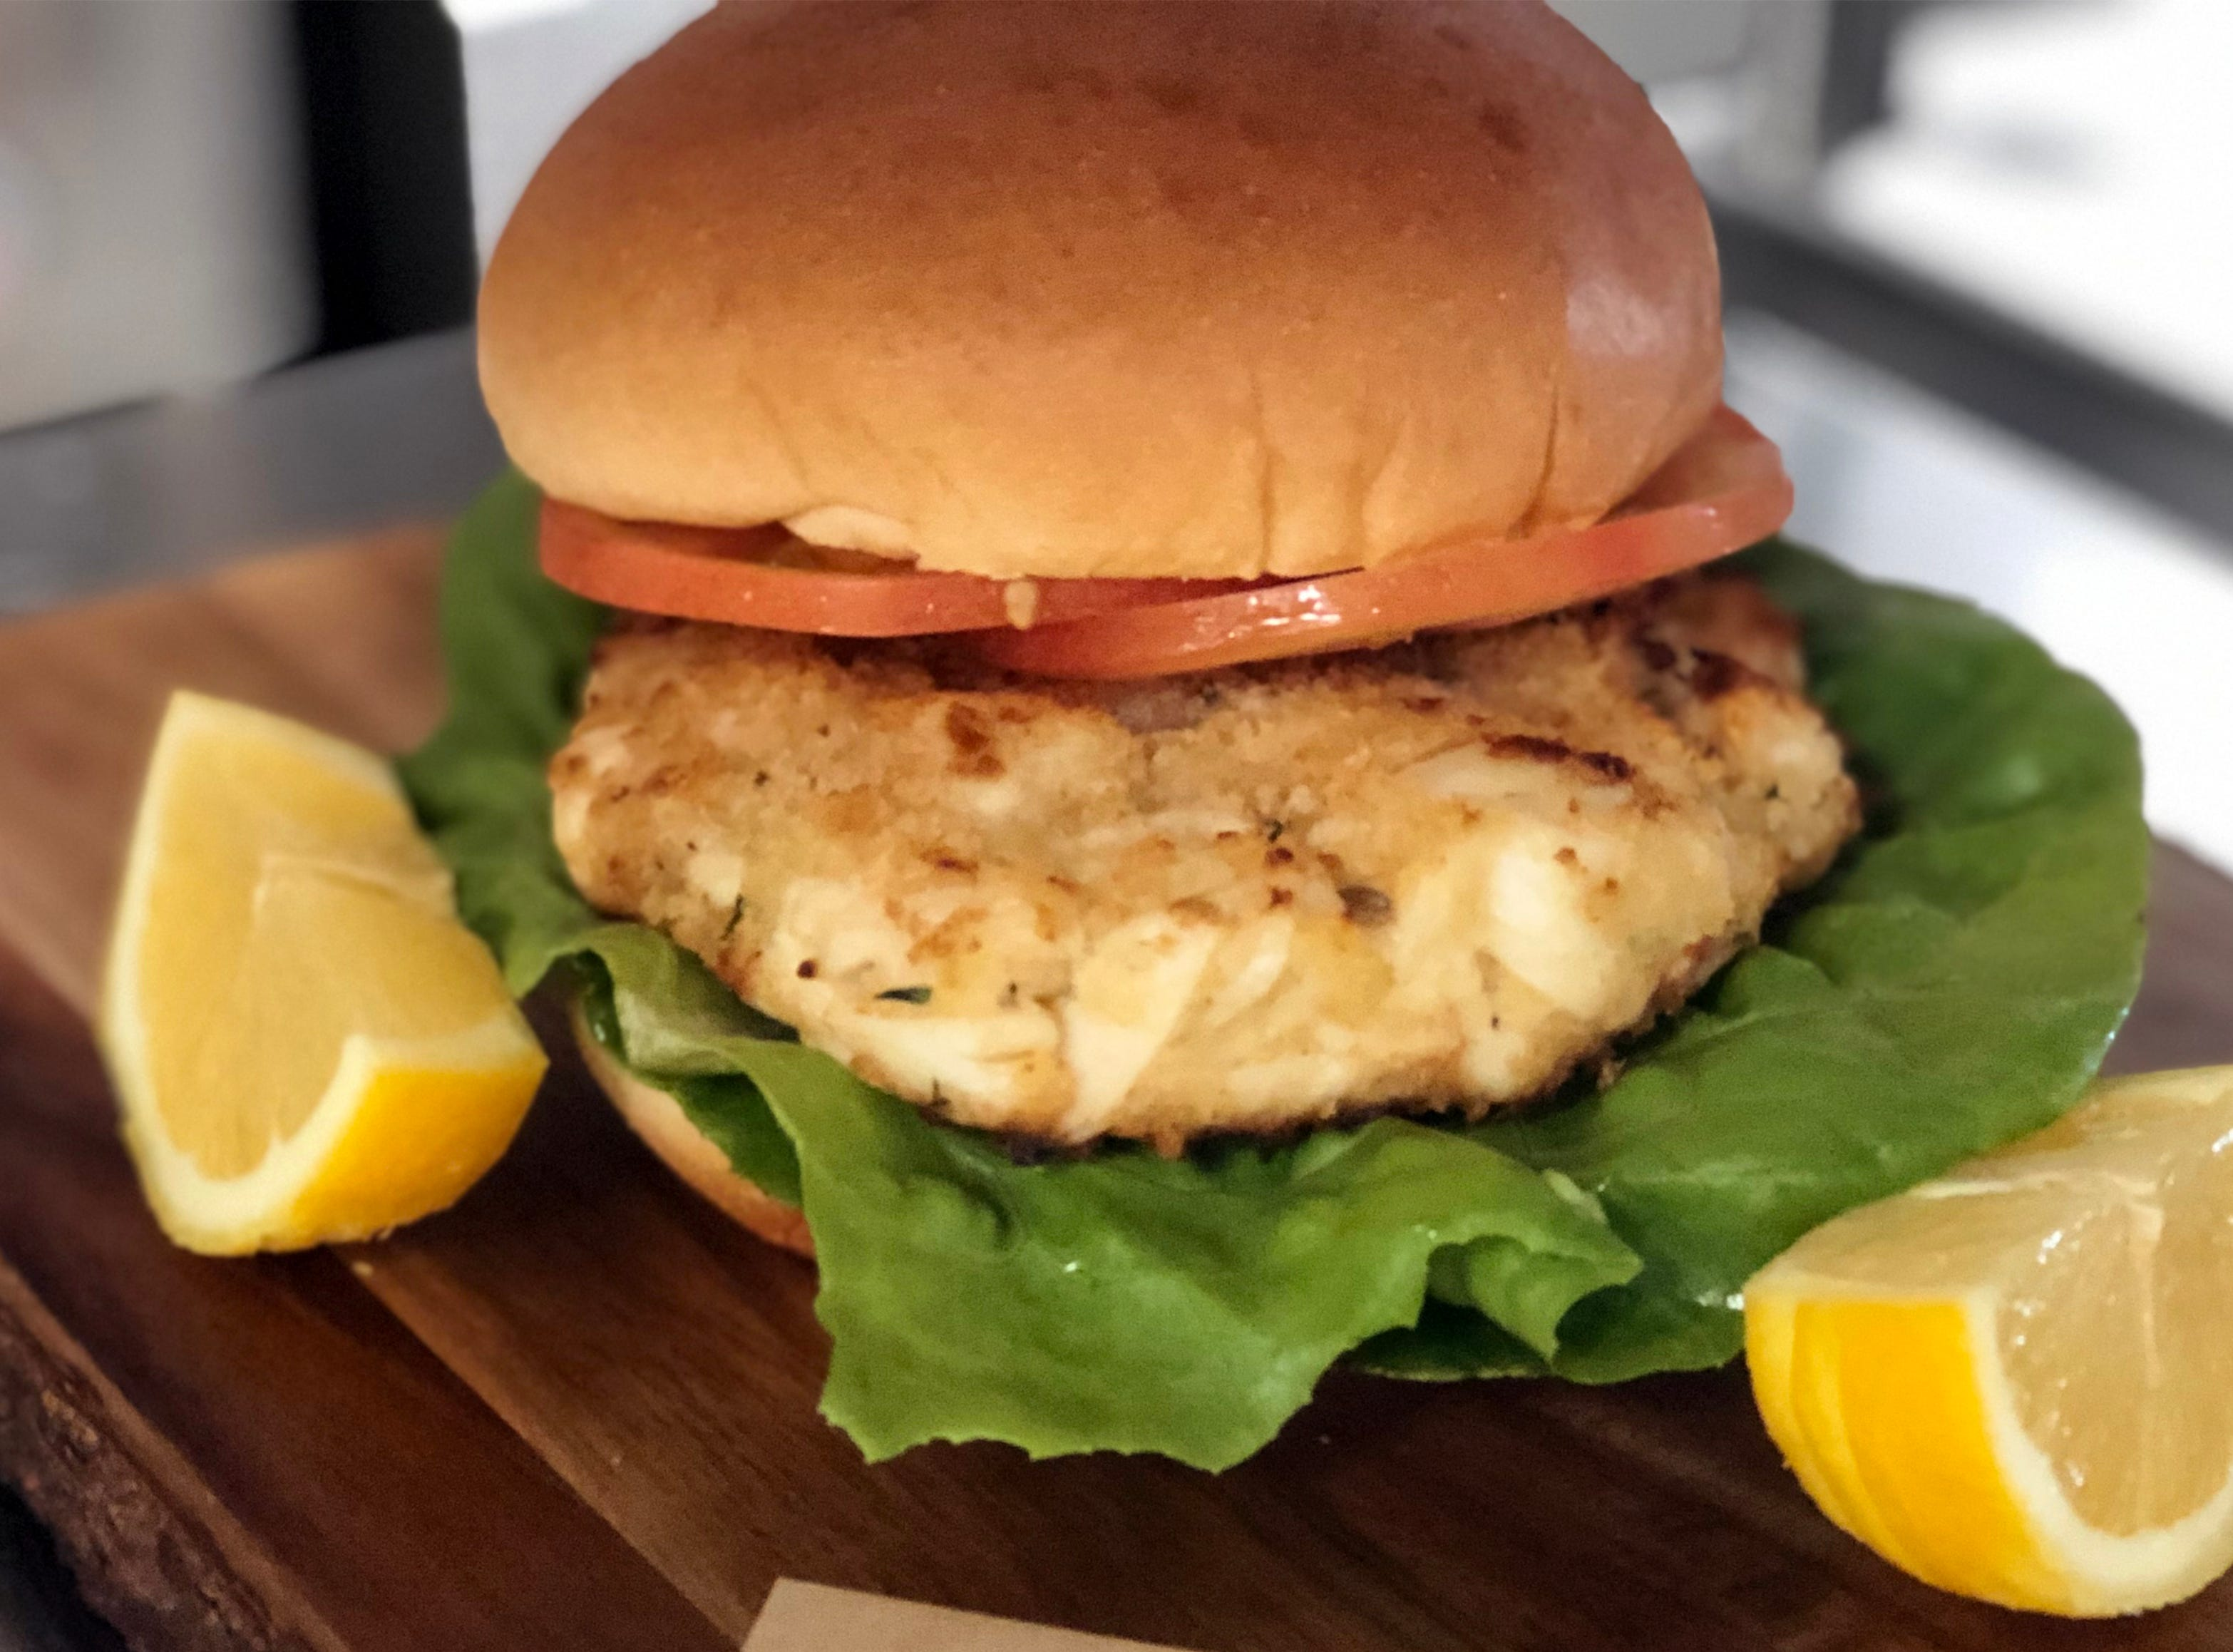 The Crab Sammie features a jumbo lump crab cake served on a brioche bun with lettuce, tomato and lemon parsley aioli at Locale Eatery in North Naples.